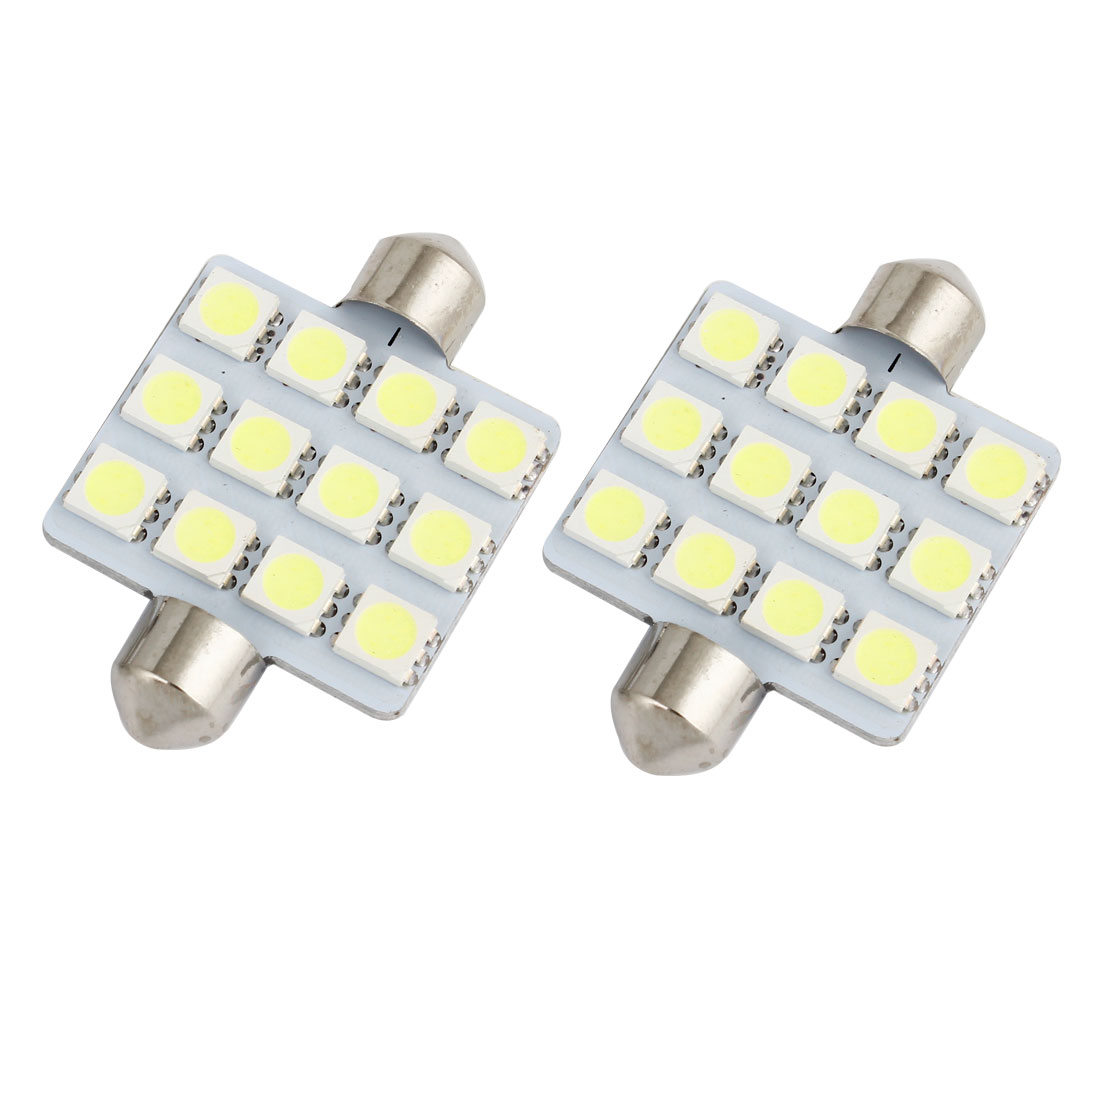 2pcs 41mm 5050 SMD 12-LED Festoon Dome Light White 211-2 212-2 569 Internal